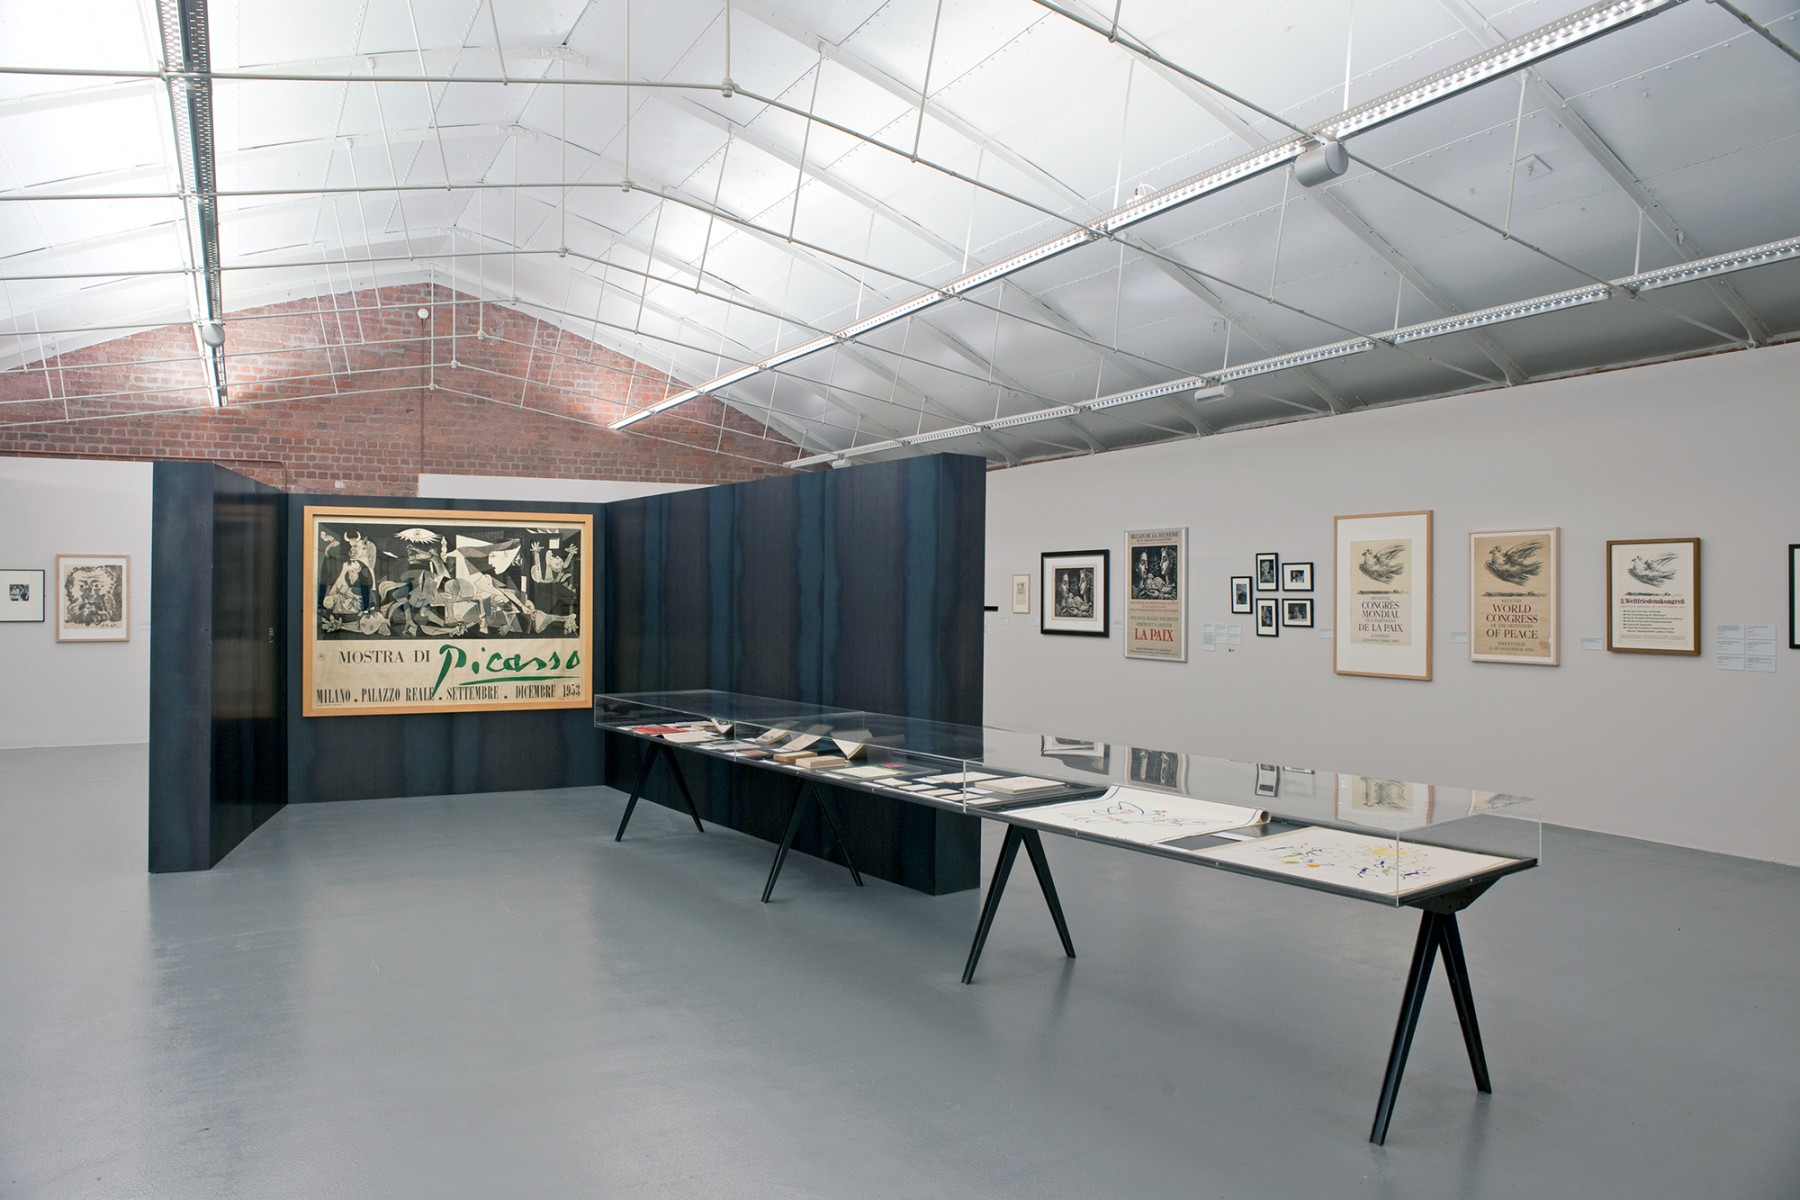 Picasso-Peace-and-Freedom-Tate-Liverpool-design-steel-exhibition-art-Jamie-Fobert-Architects-2